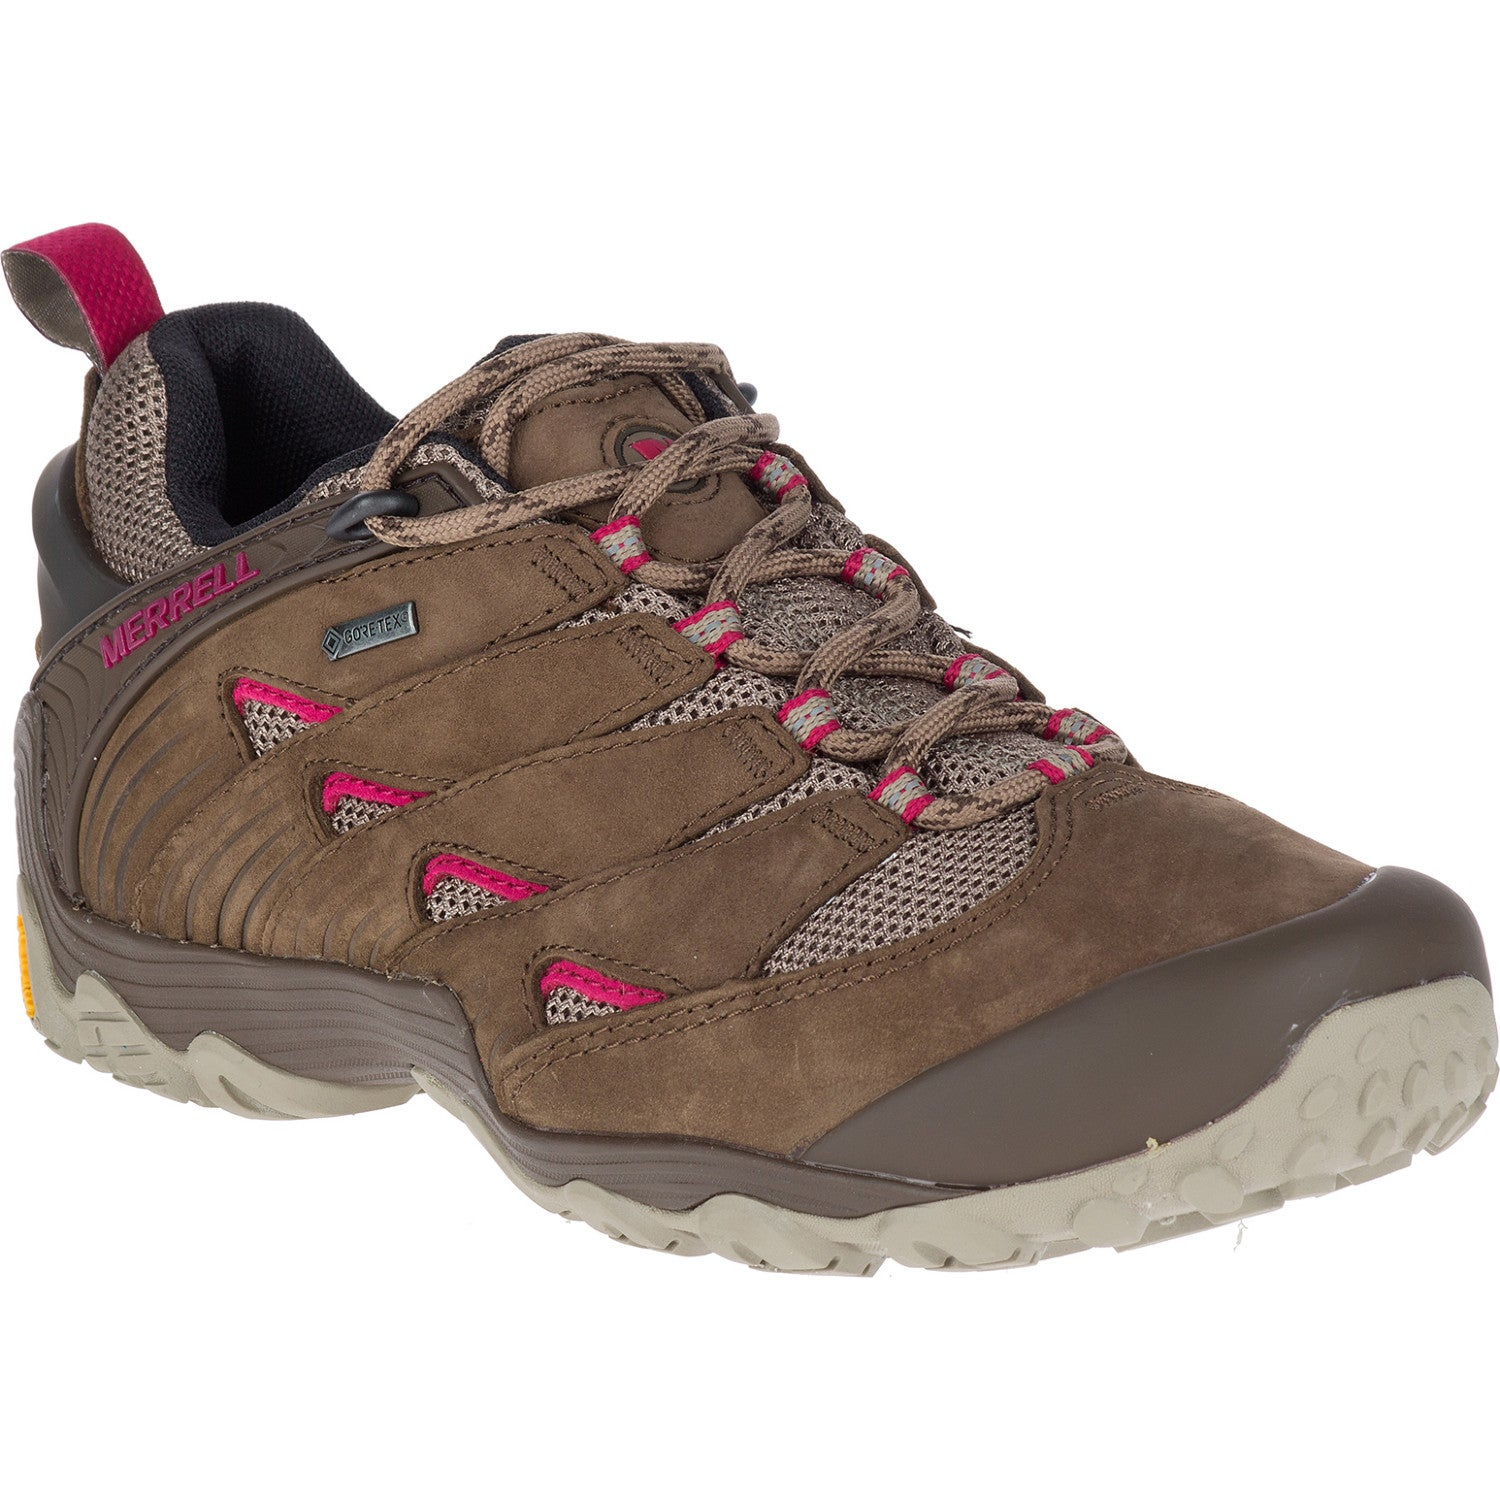 9ee2b1e6d51 Merrell Chameleon 7 GTX Ladies Shoes from Fitness Footwear